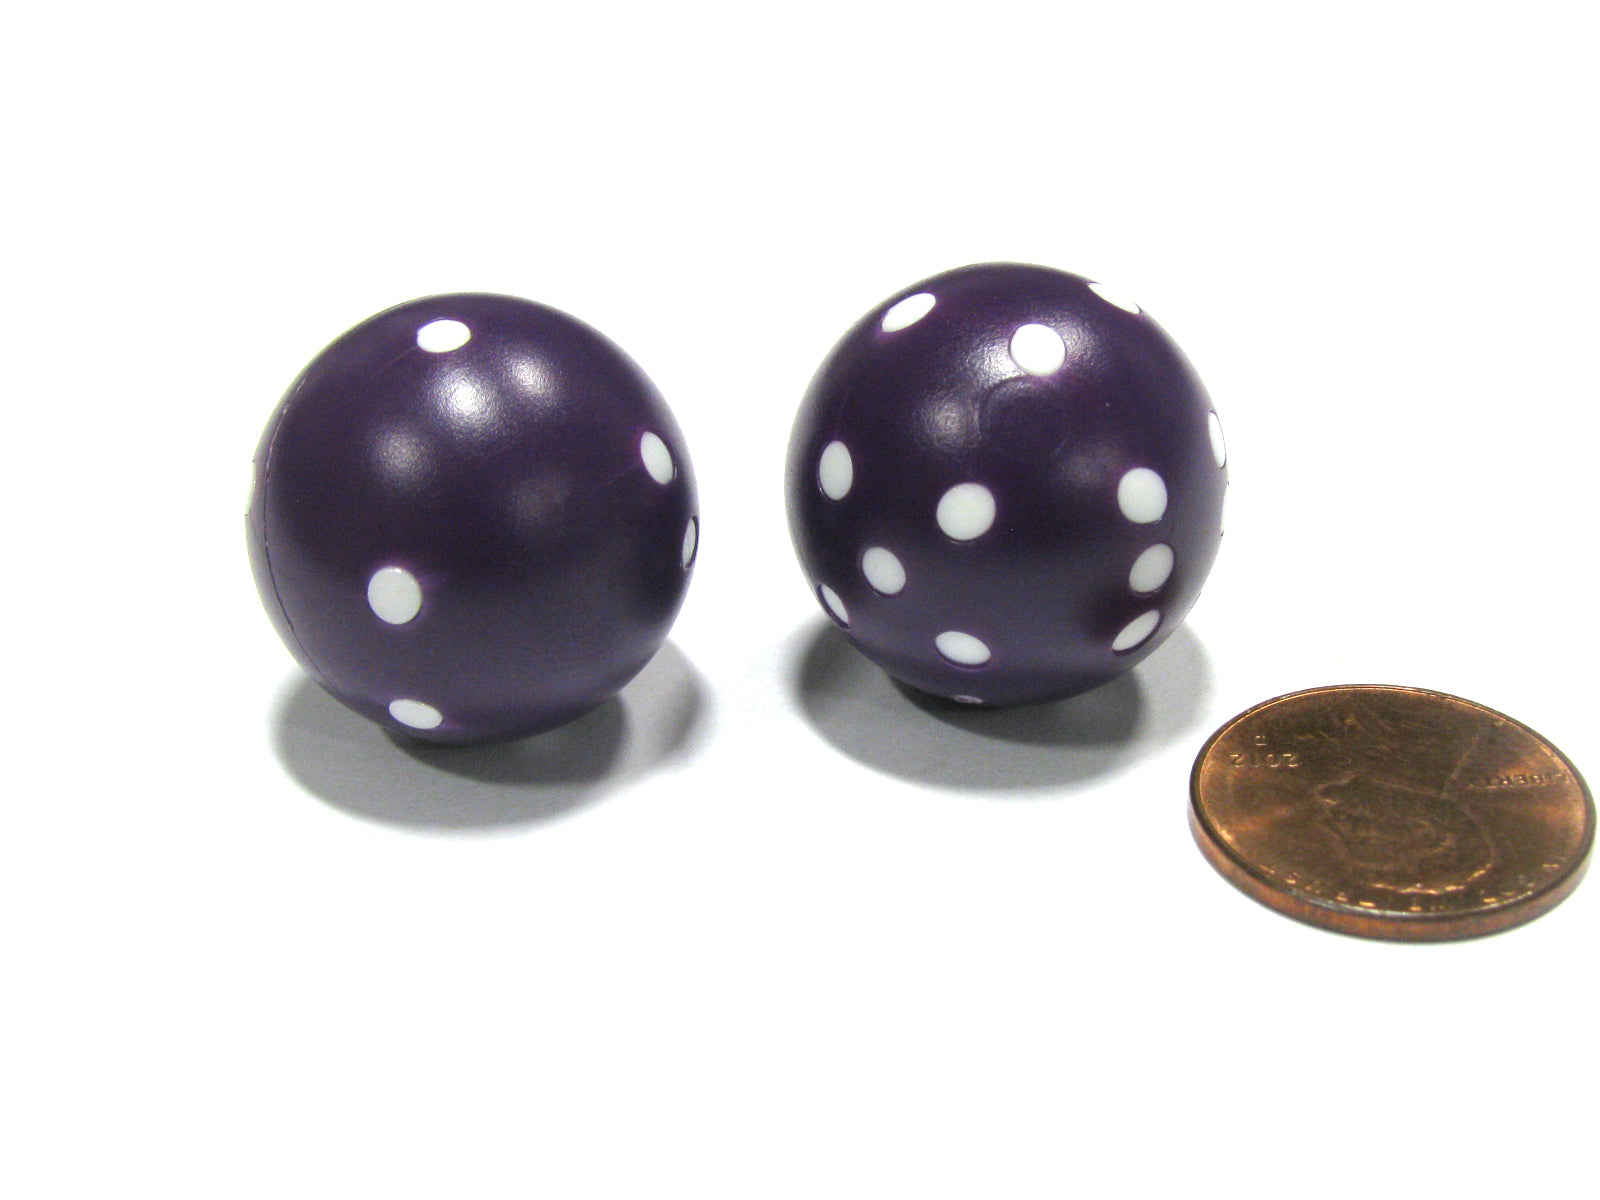 Set of 2 22mm Round Dice, Weighted to Display Number - Purple with White Pips